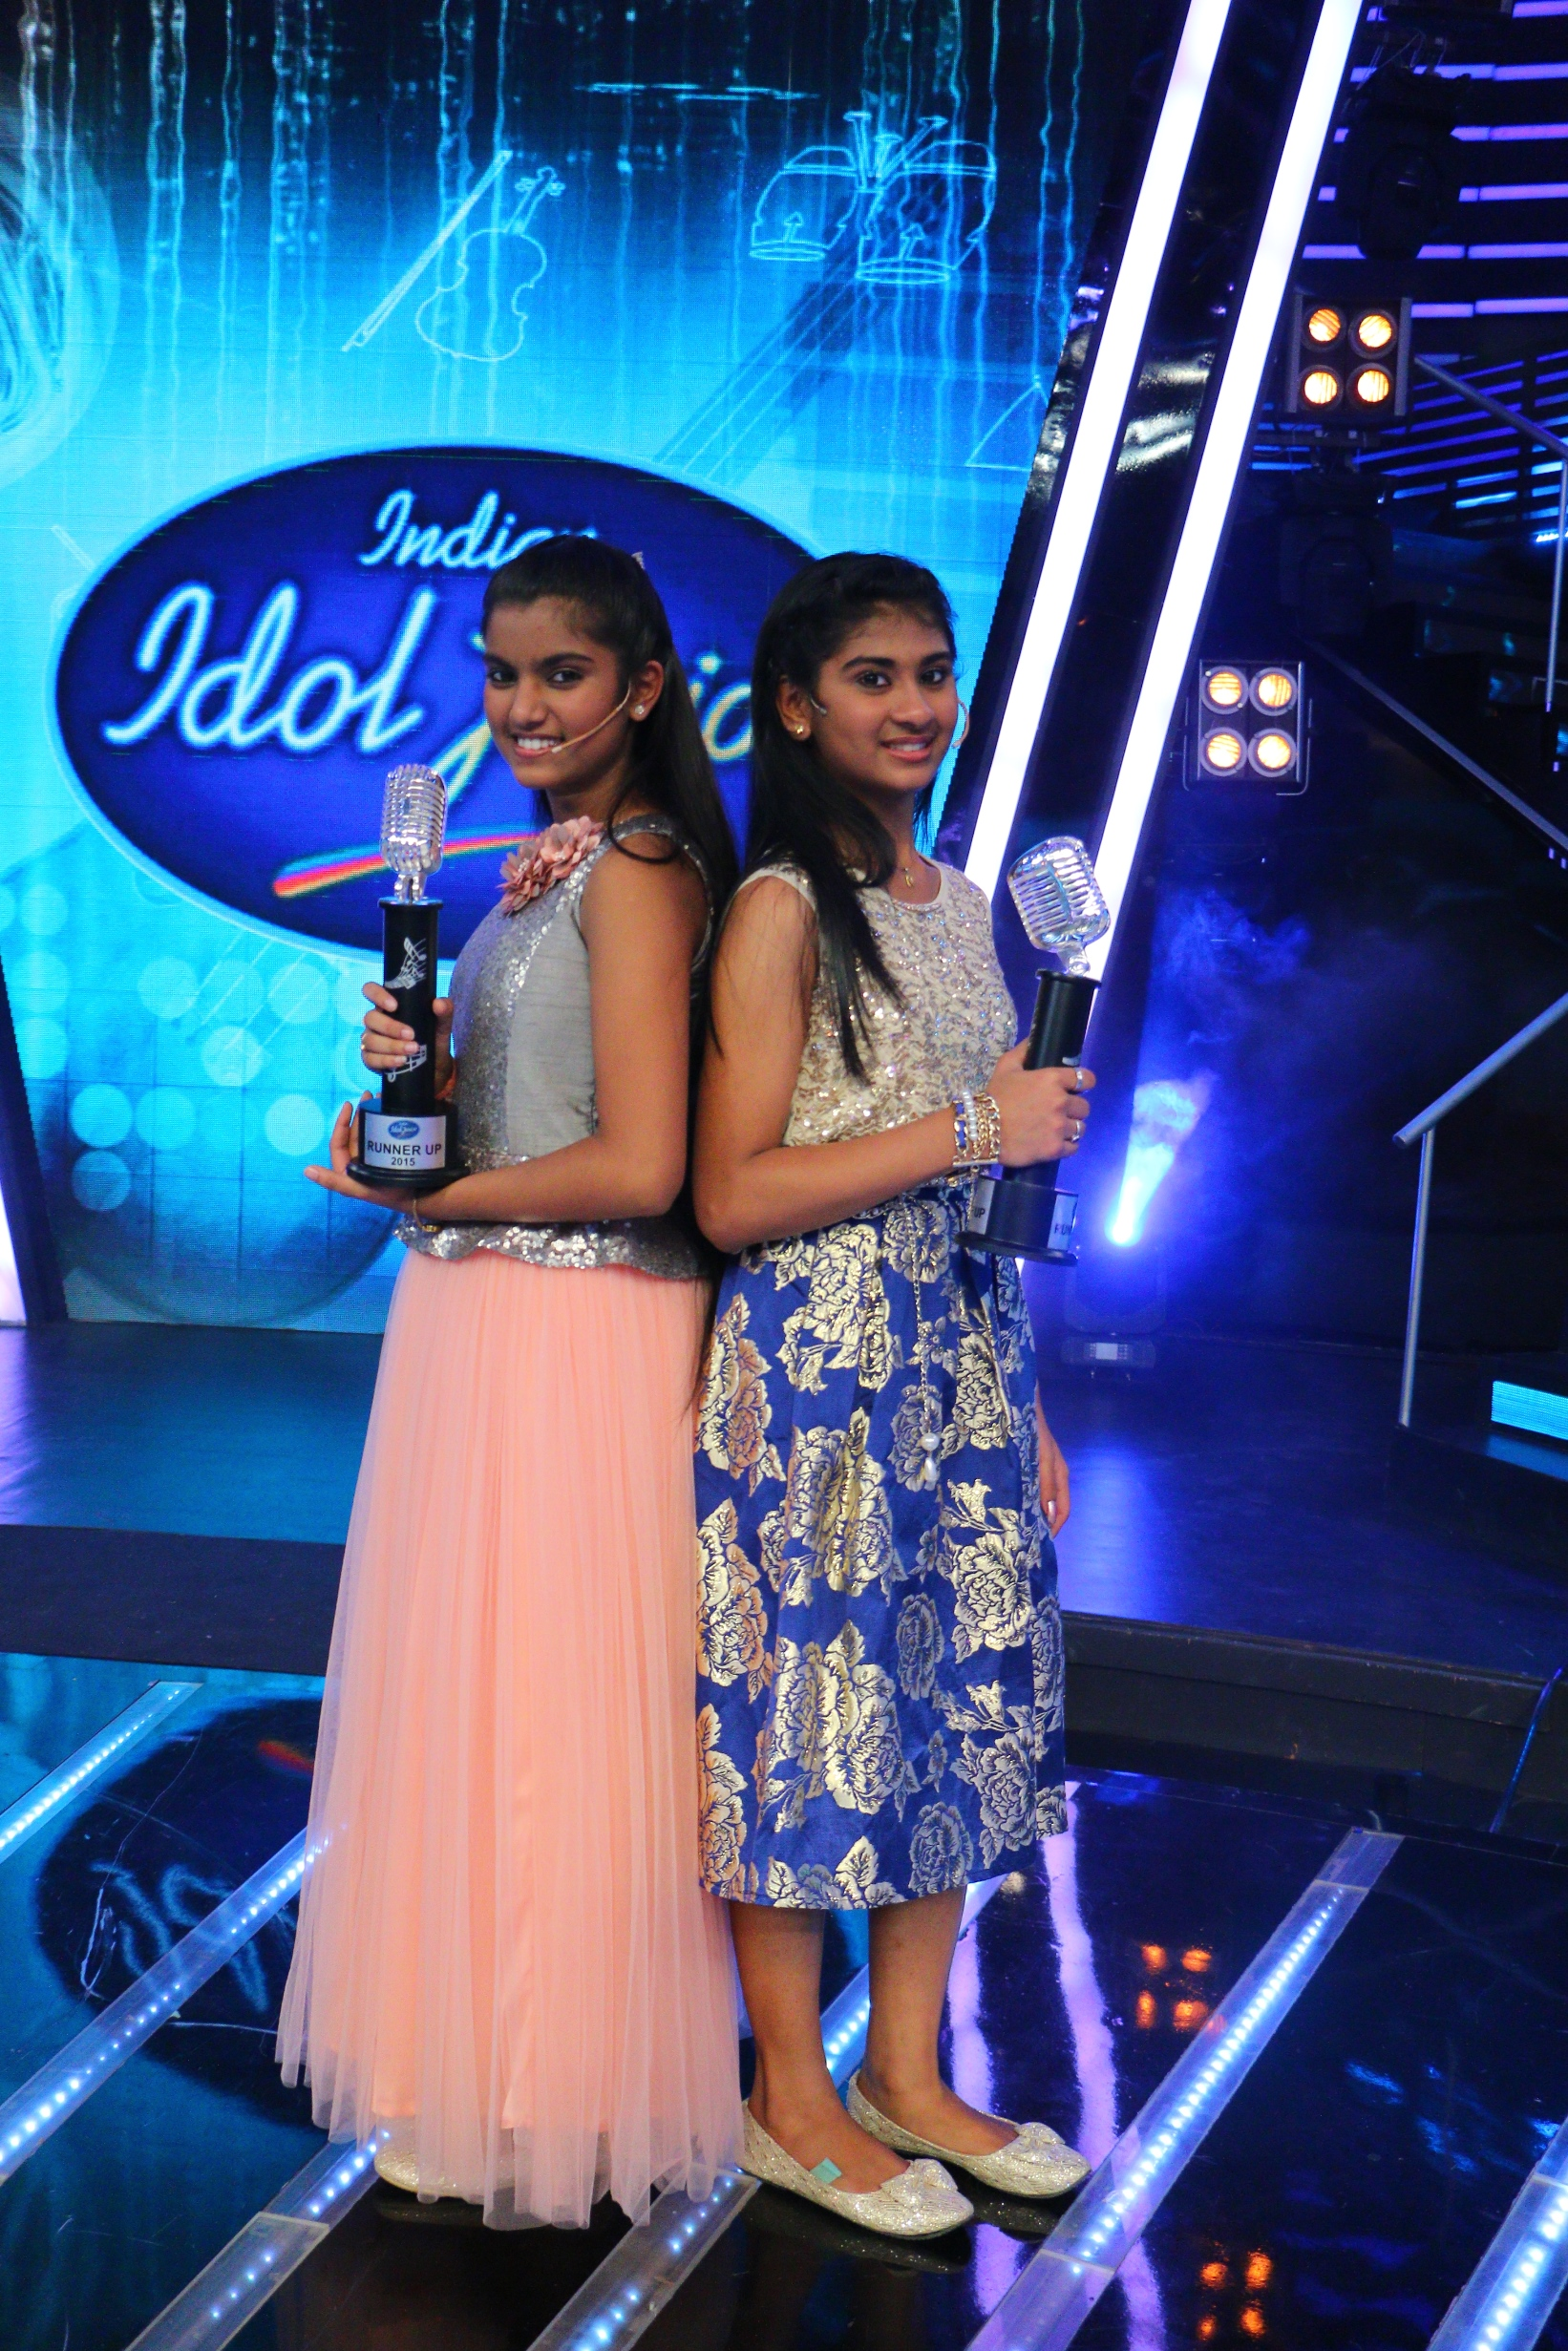 dating.com reviews 2015 indian idol 2018